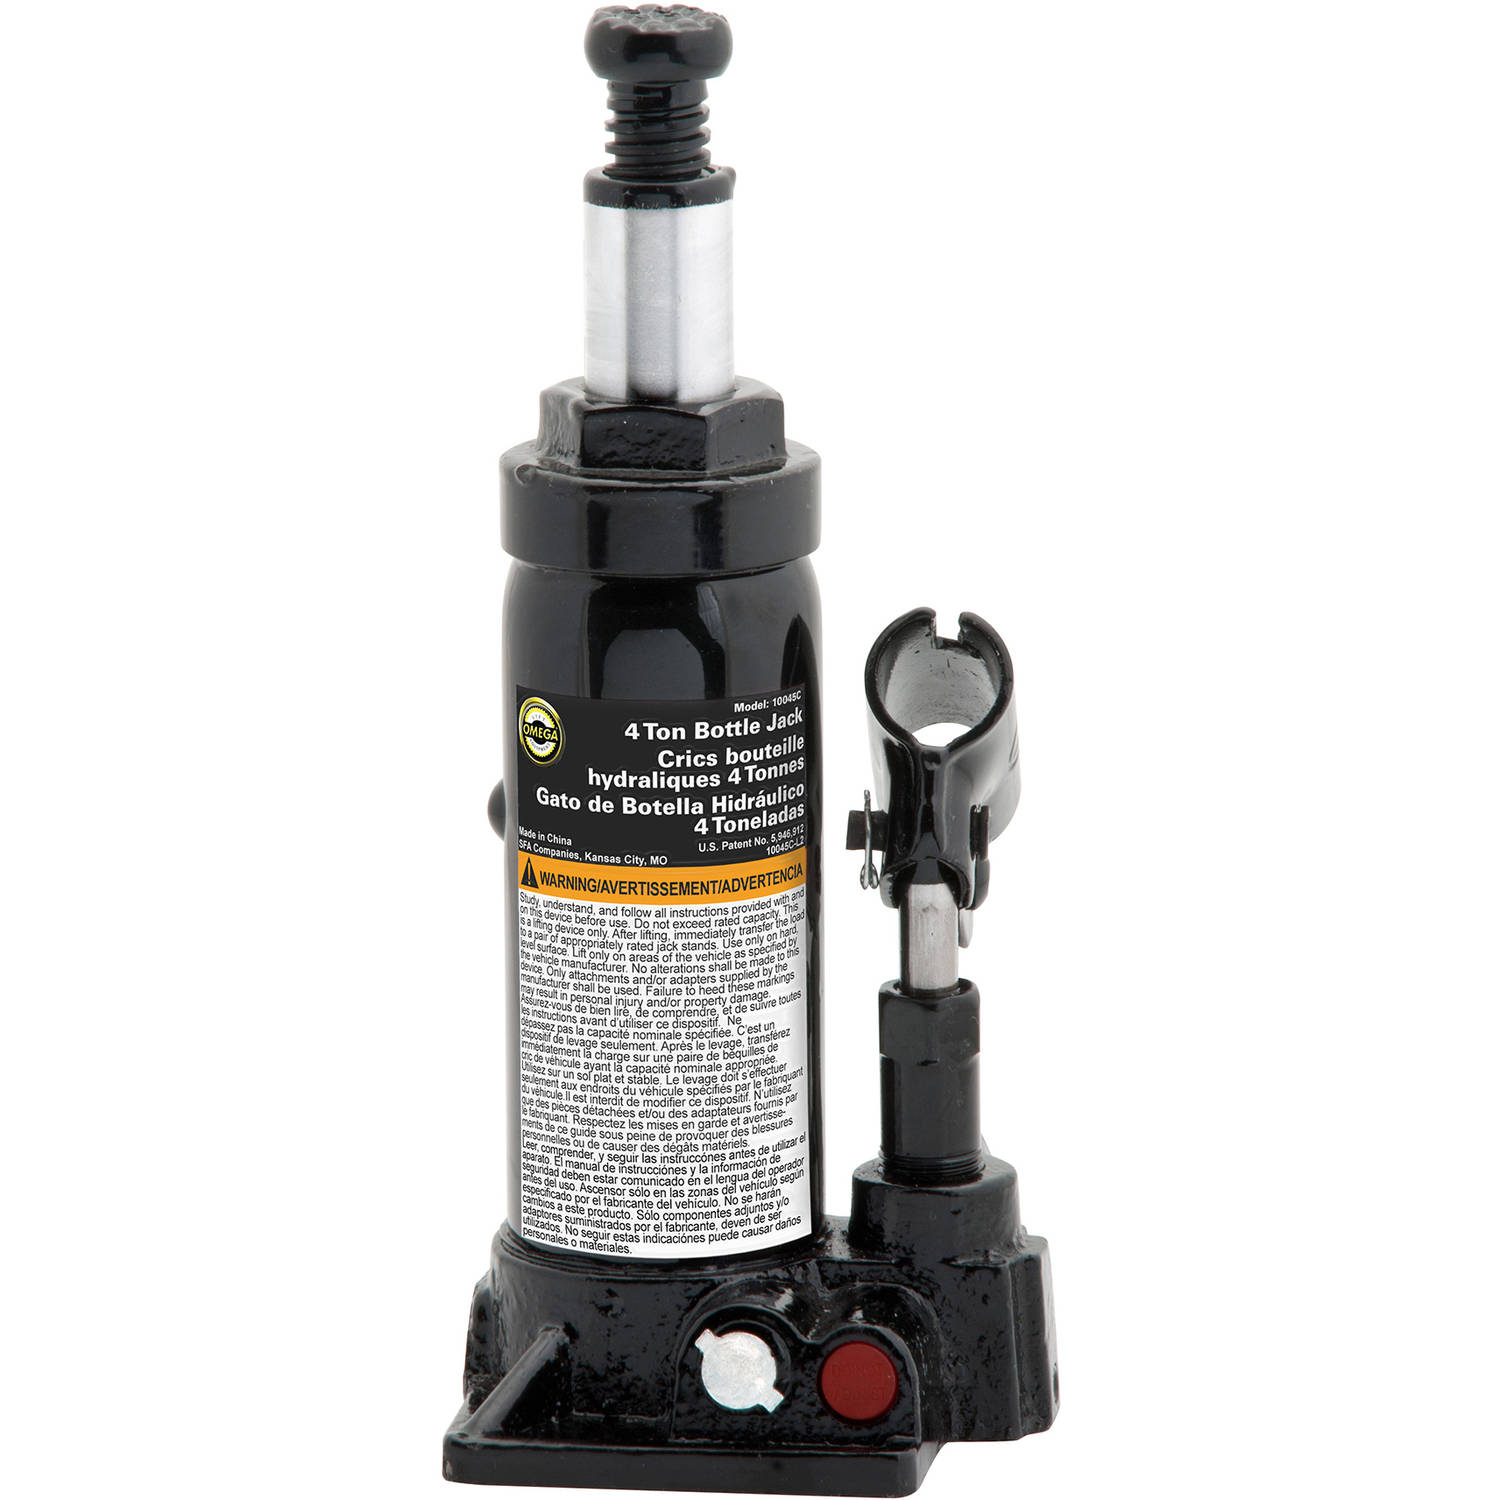 Omega 10045B Black Hydraulic Bottle Jack, 4 Ton Capacity